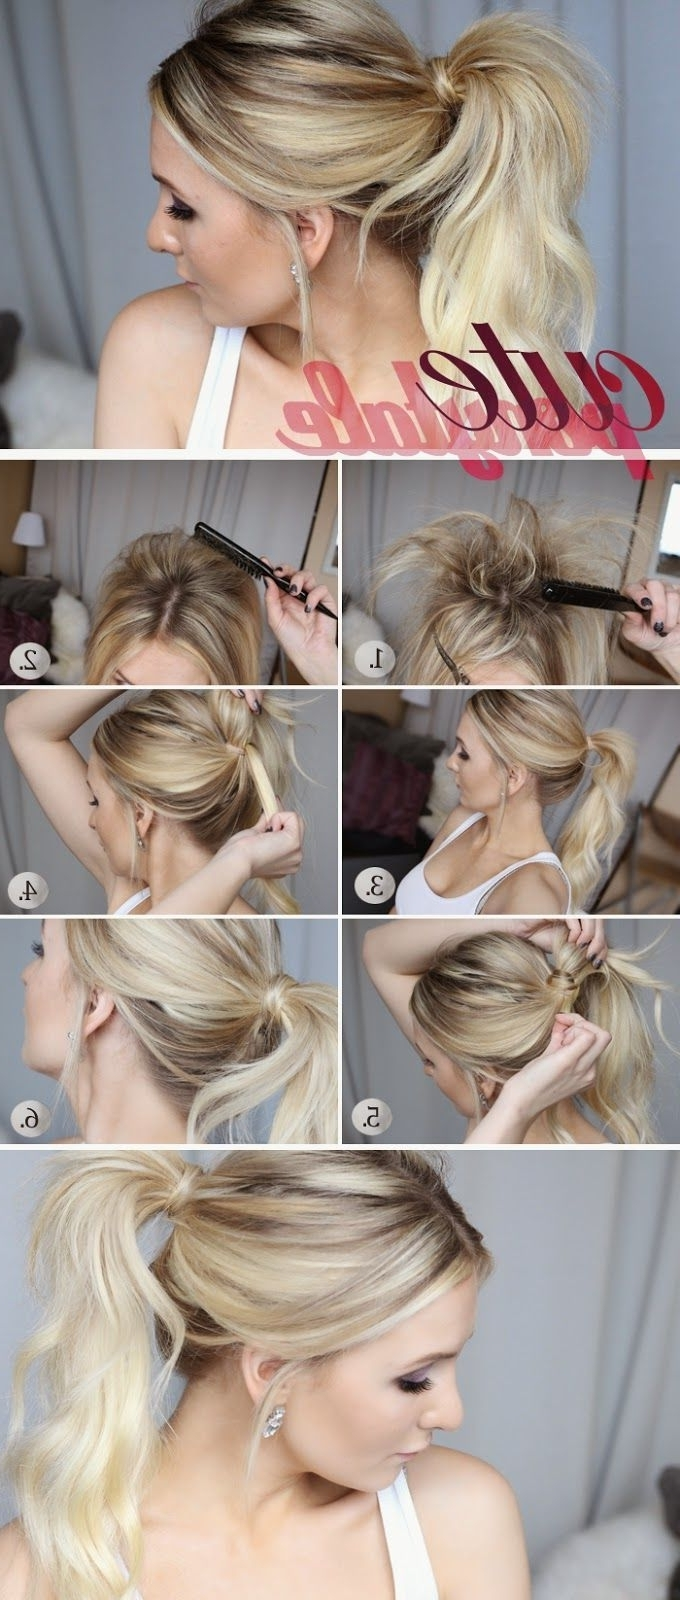 10 Quick And Simple Ponytail Tutorials For Fall (View 2 of 20)